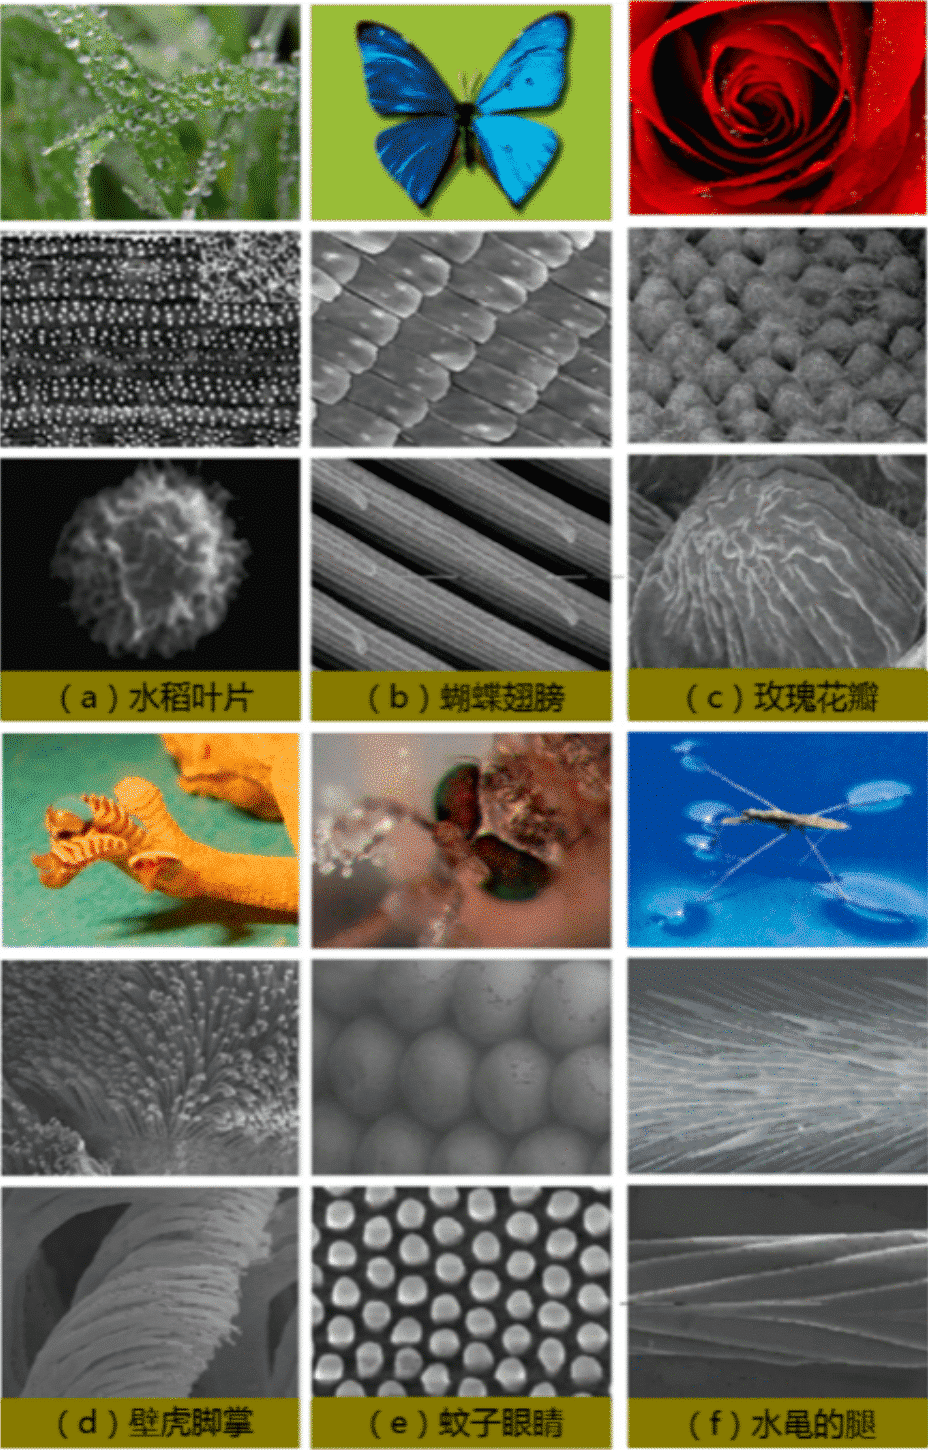 From nature to bionics: the past and present of superhydrophobic materials 2